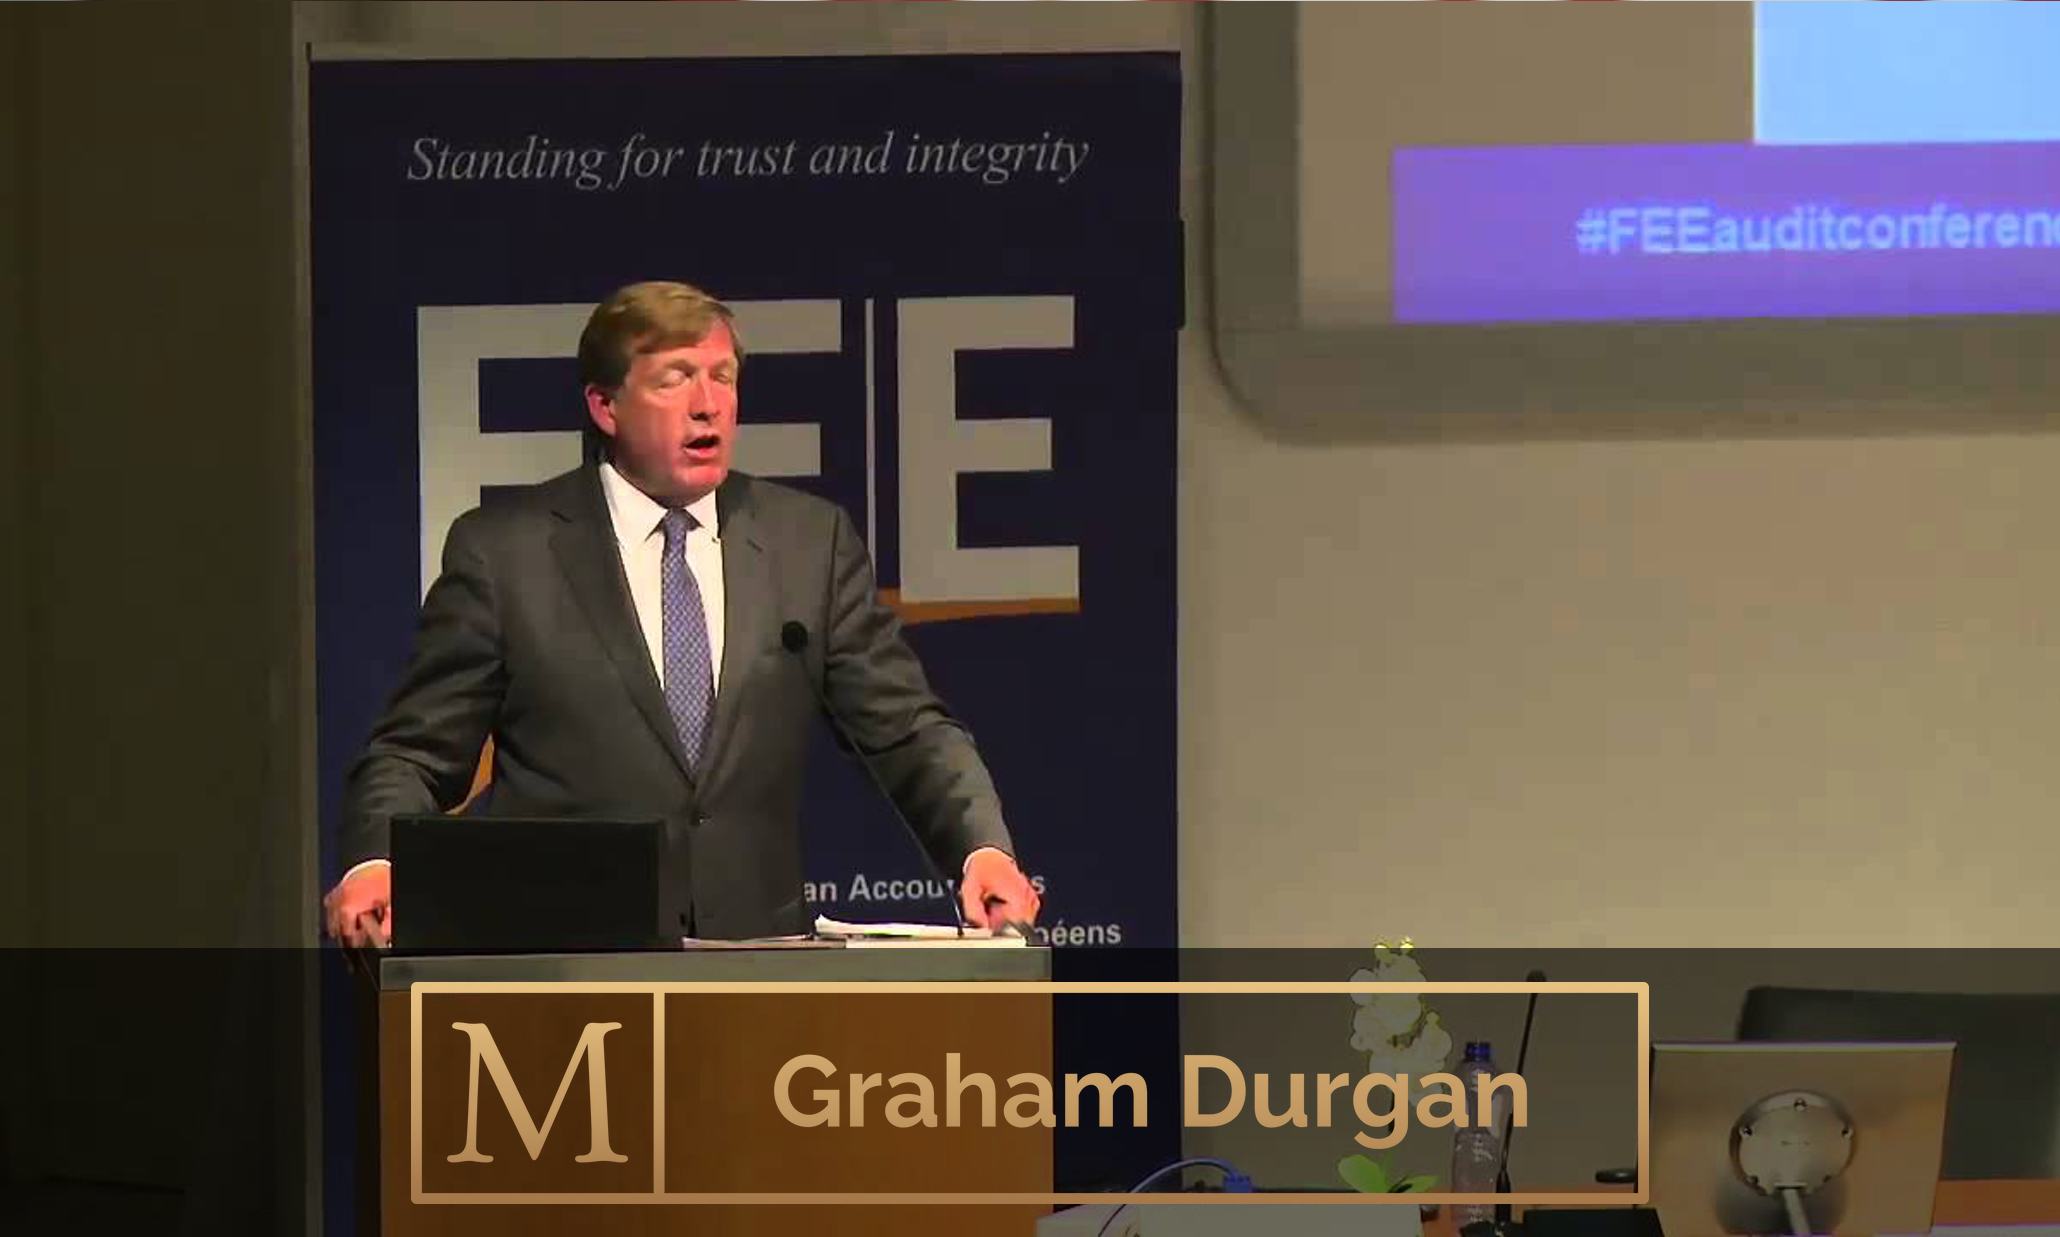 Conference Chairman: Graham Durgan - Entrepreneur, mentor, publisher, Chairman of Emile Woolf (Holdings) Ltd., Chairman and founder of Non-Executive Directors Association, Young Presidents Organisation